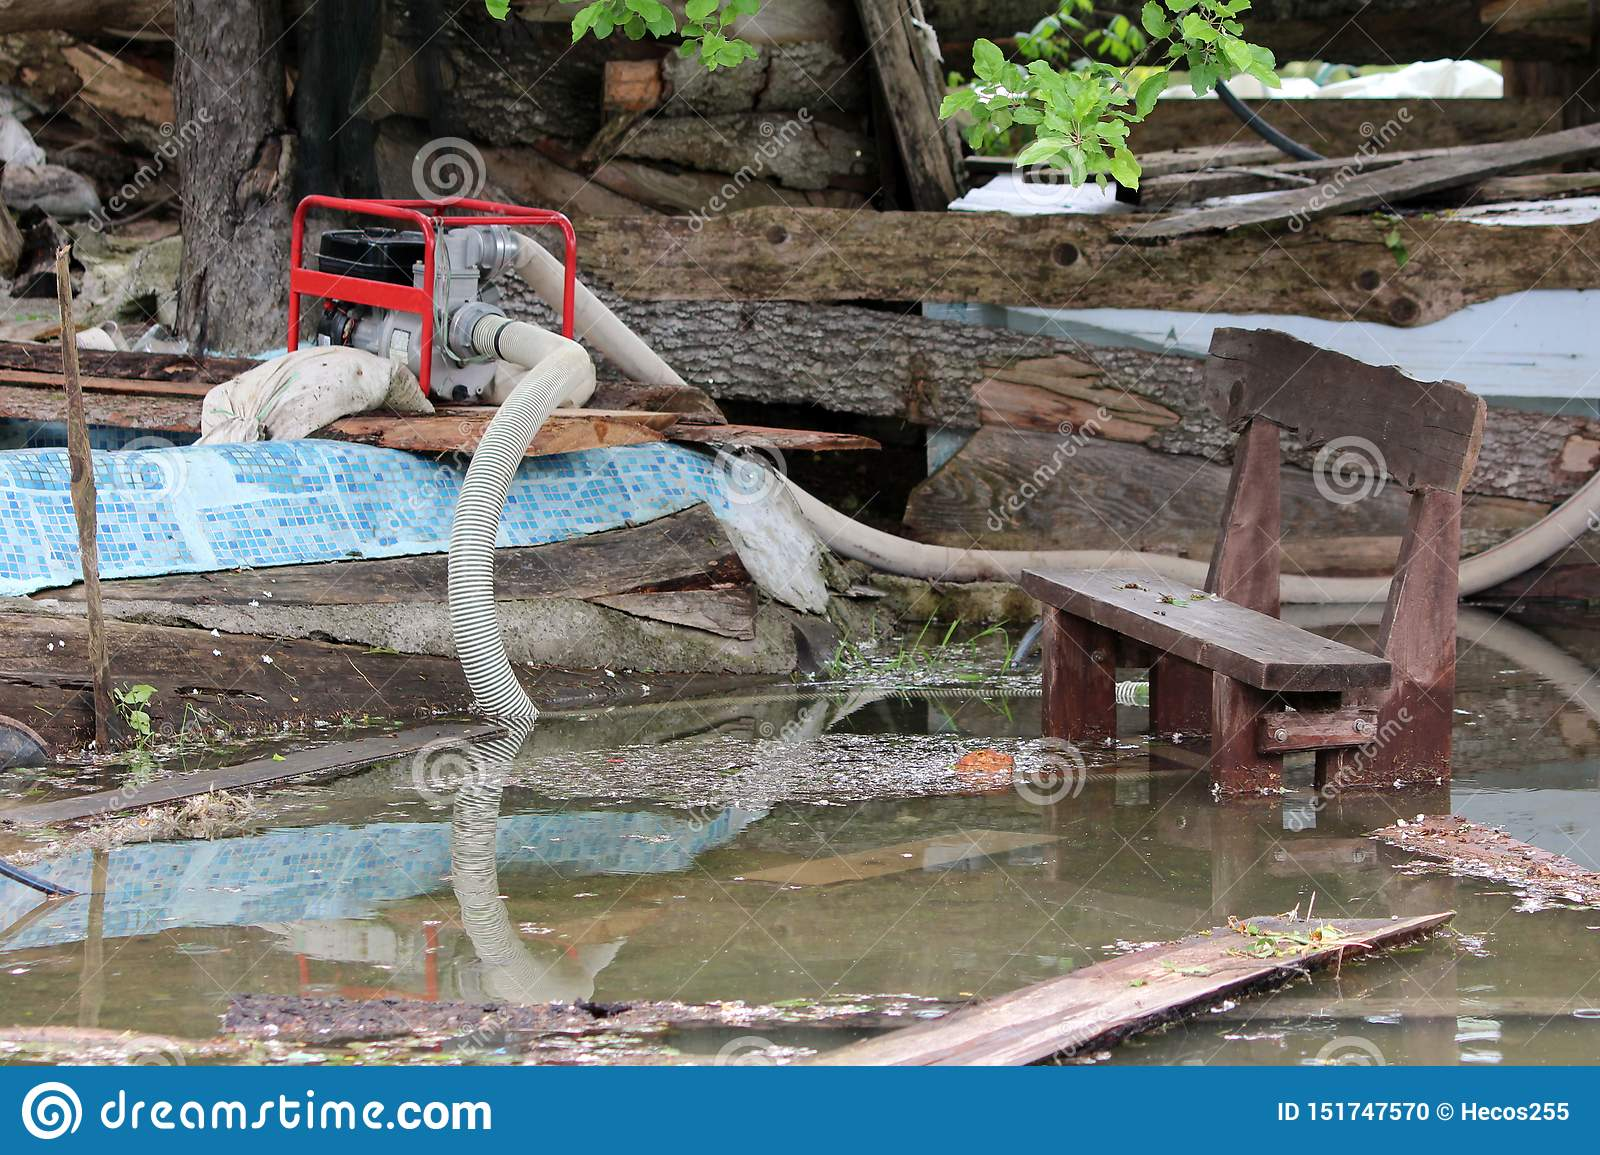 Family house backyard completely destroyed during natural disaster with industrial petrol water pump used to pump flood water next